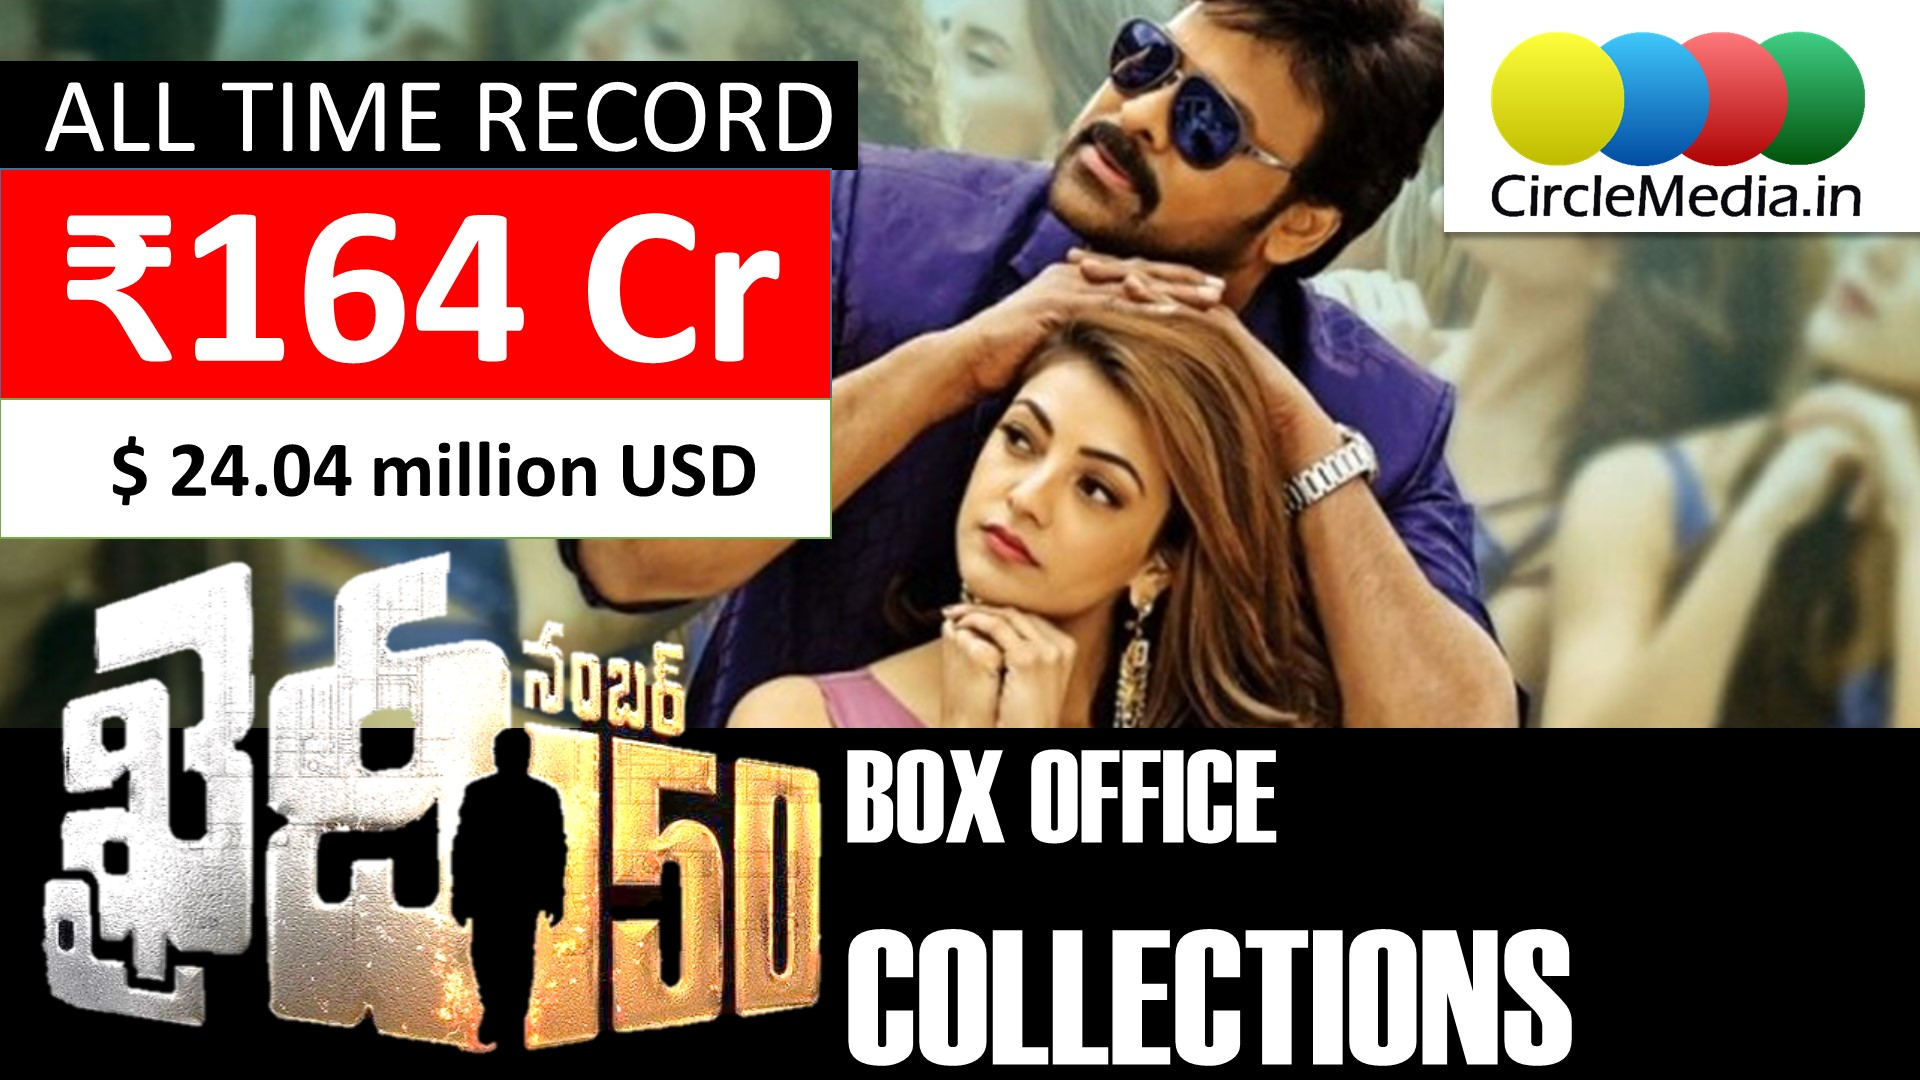 Khaidi No 150 All Time Film Industry Record Collections | Rs 164 crore worldwide